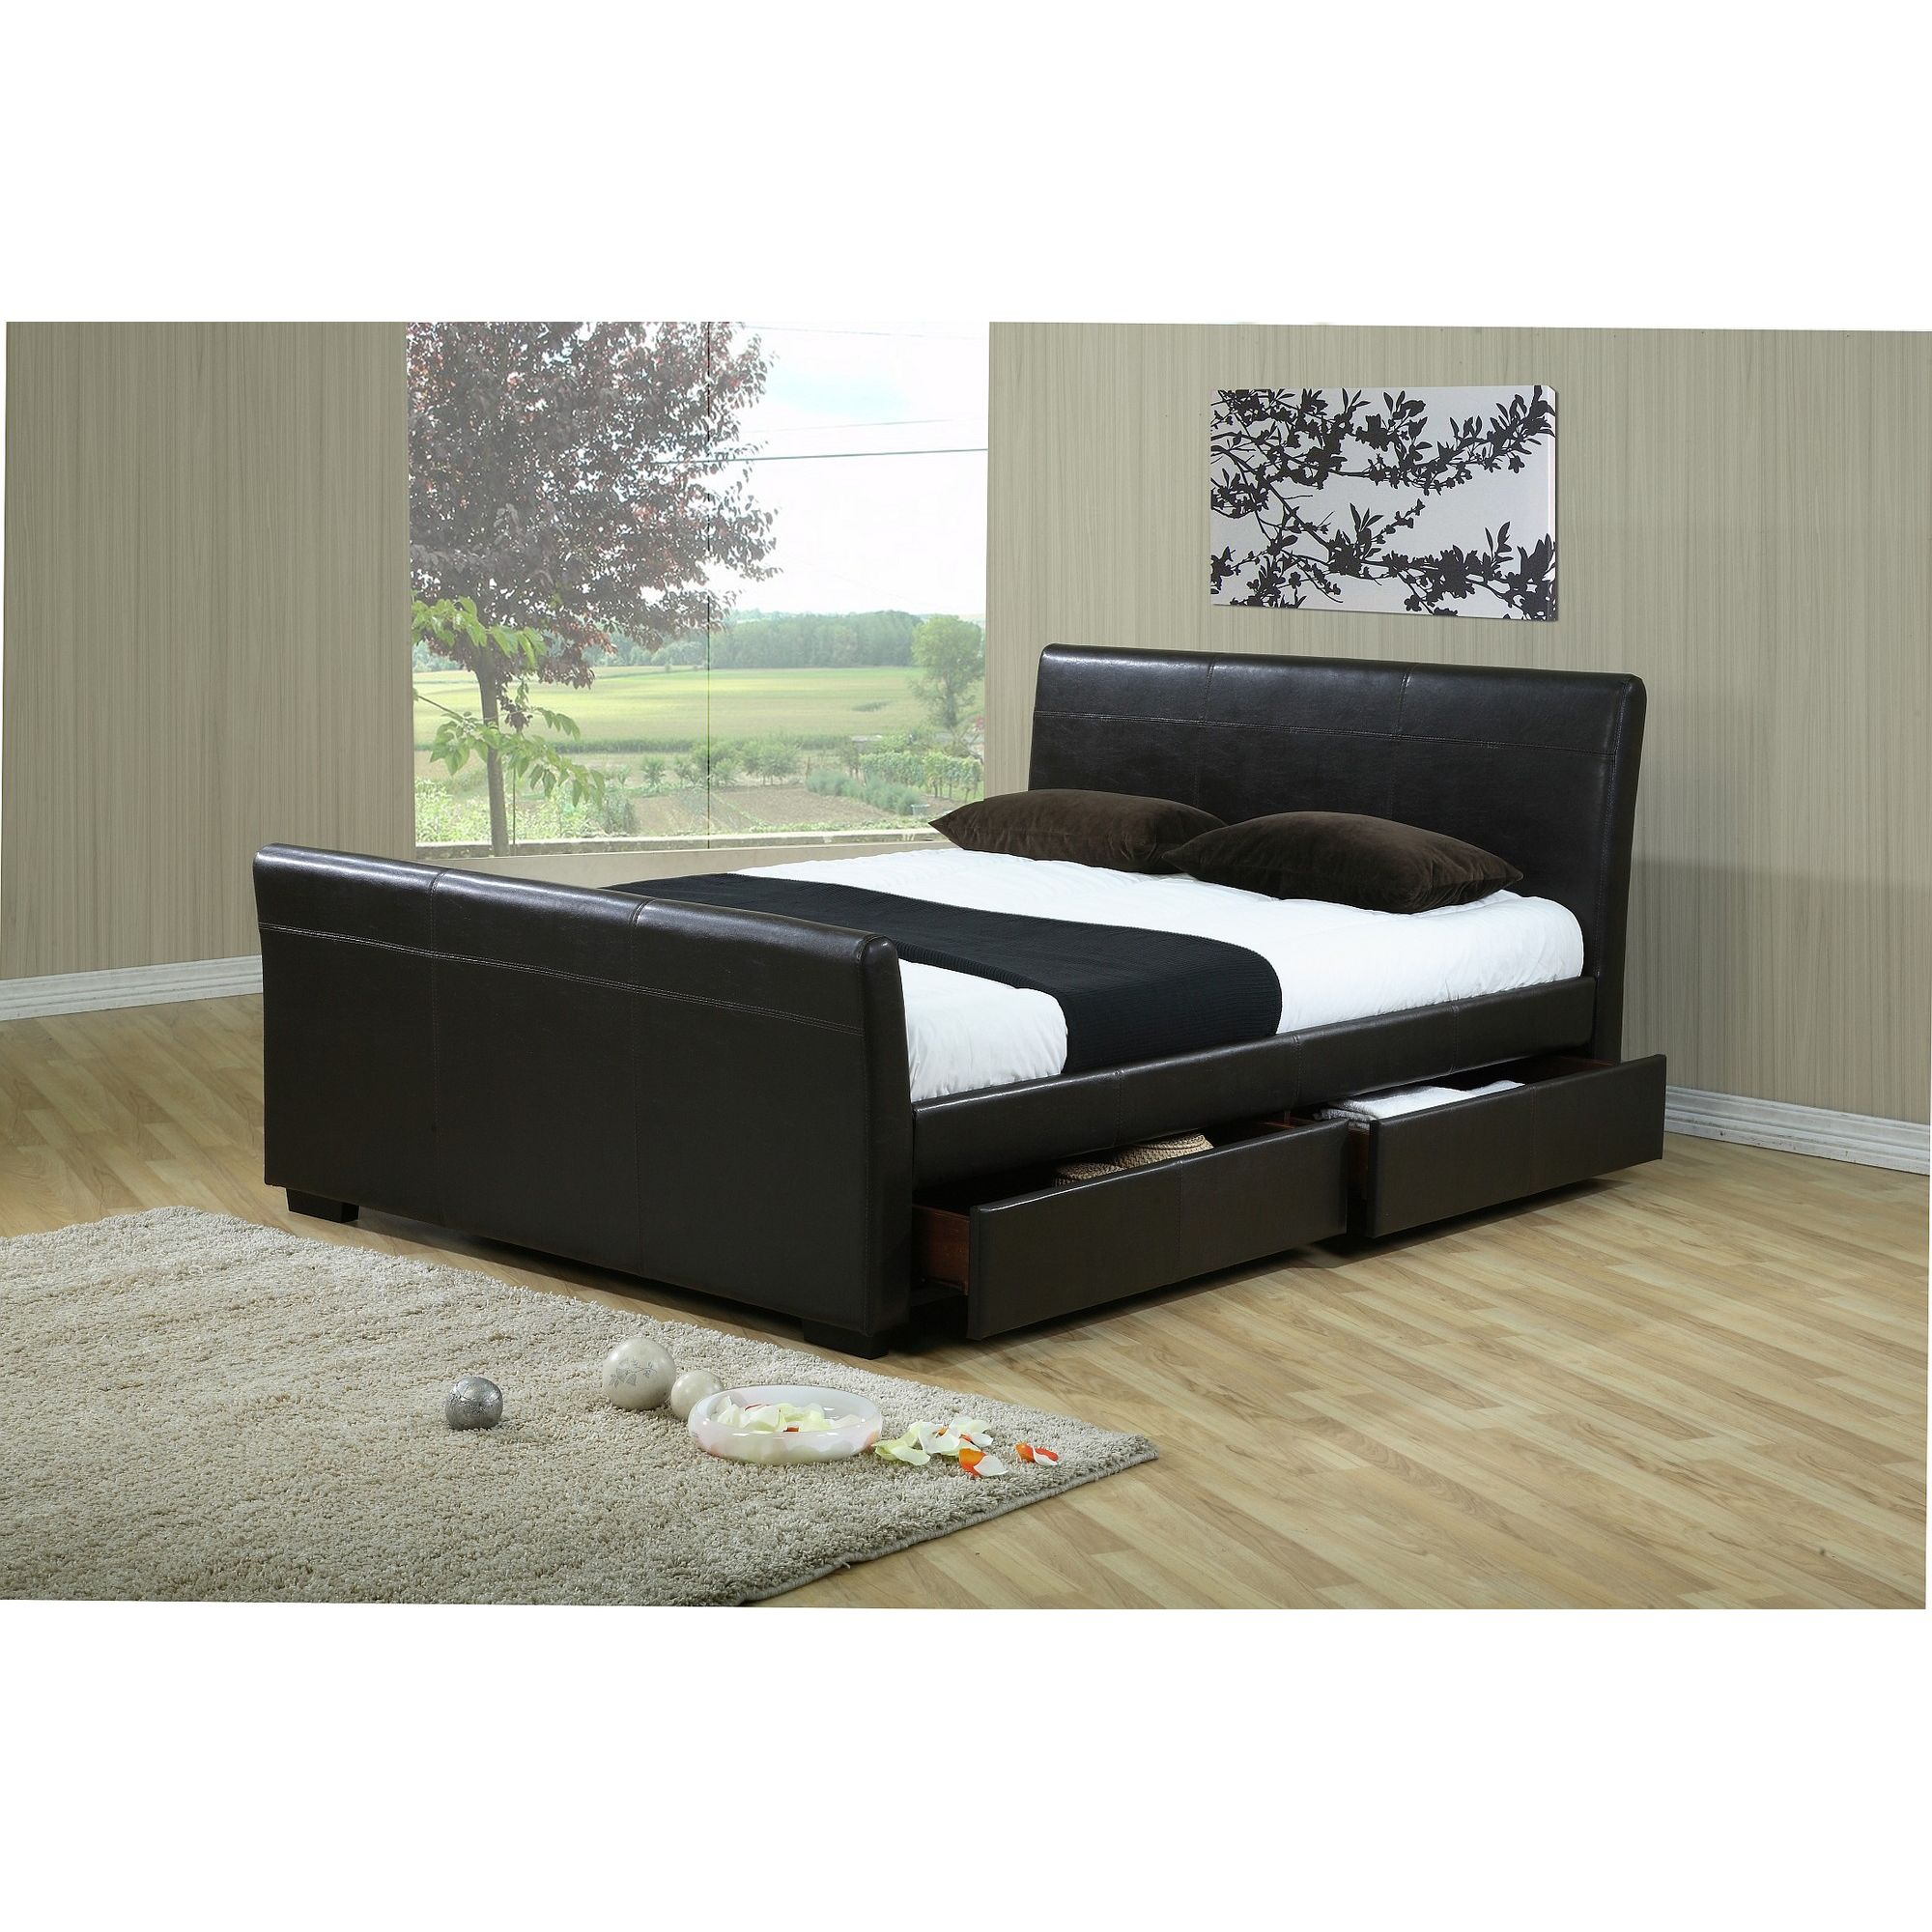 Altruna Houston Faux Leather Bed Frame - Double - Brown at Tesco Direct